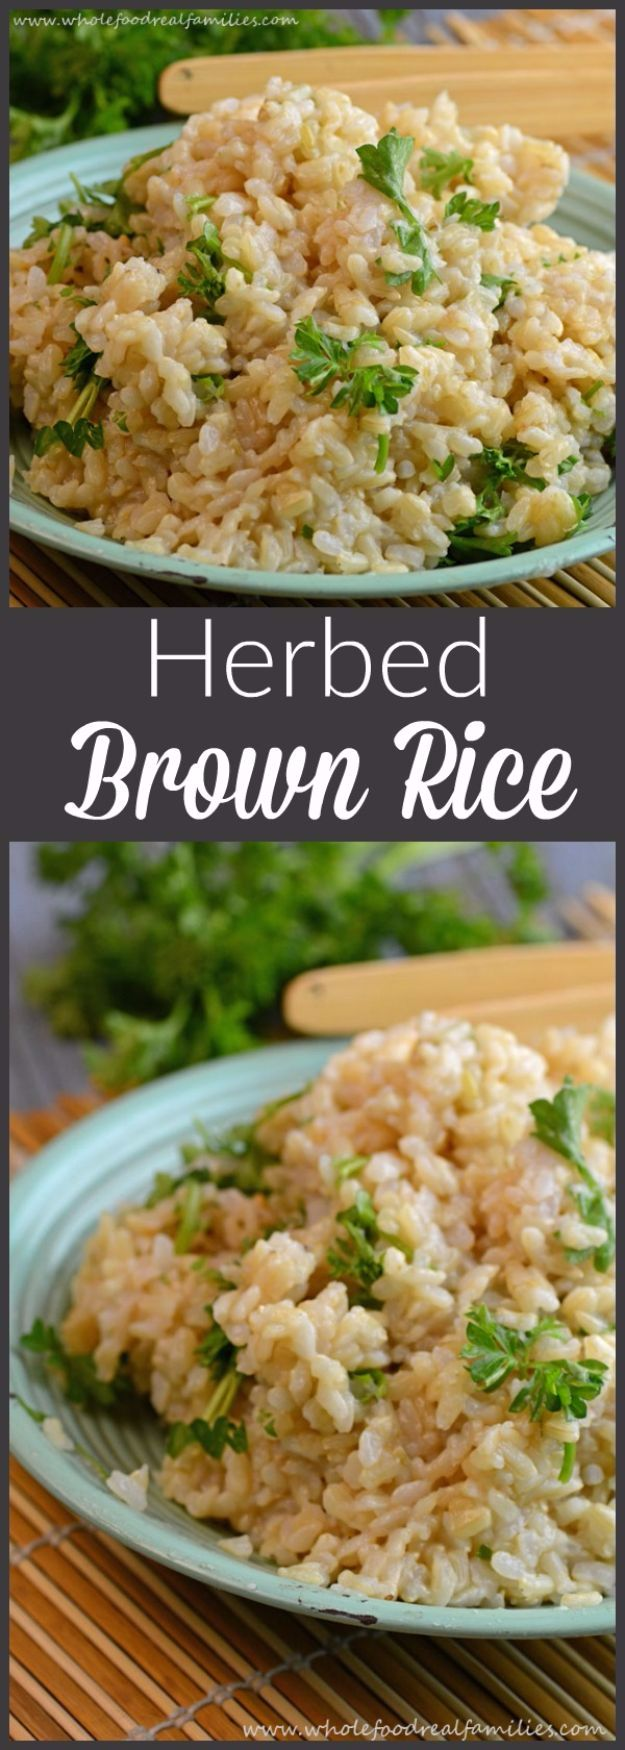 Best Rice Recipes - Herbed Brown Rice - Easy Ideas for Quick Meals Made From a Bag of Rice - Healthy Recipes With Brown, White and Arborio Rice - Cheesy, Fried, Asian, Mexican Flavored Dinner Dishes and Side Dishes - DIY Projects and Crafts by DIY JOY